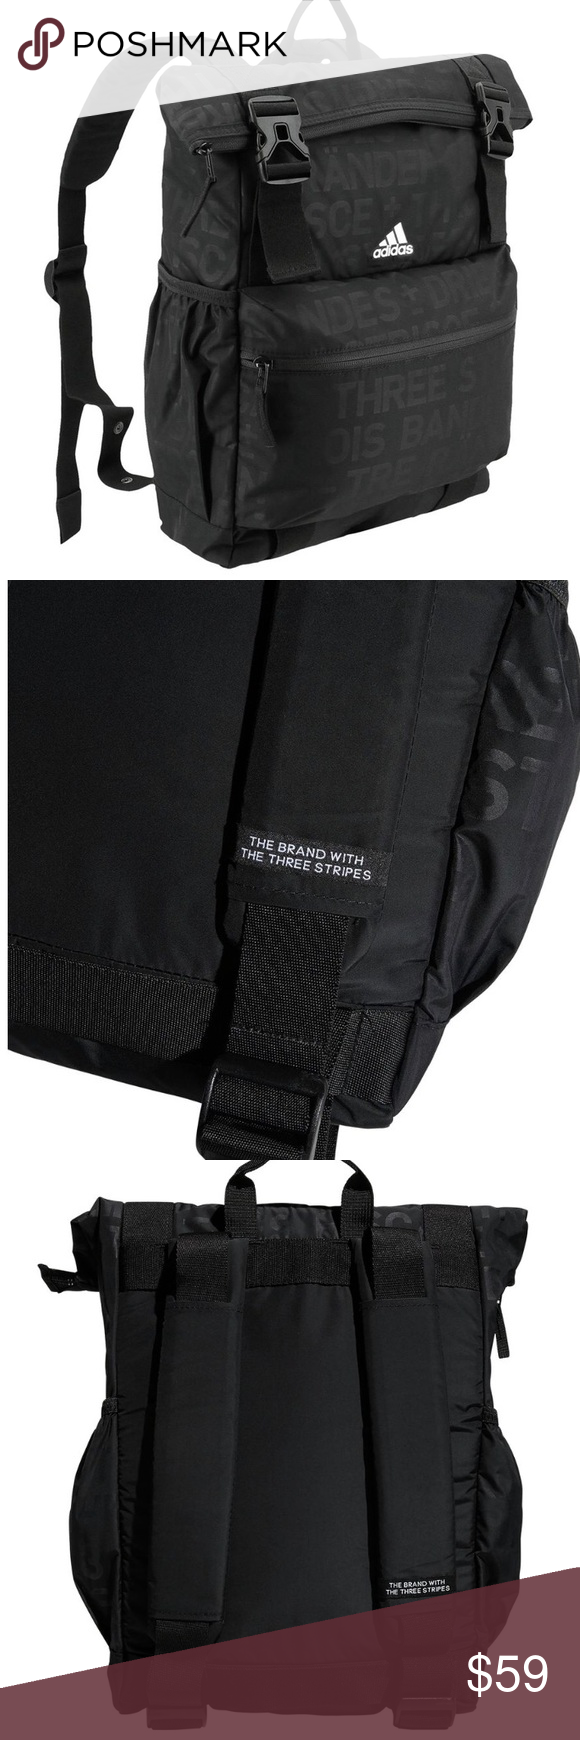 Adidas yoga backpack Adidas YOLA backpack. A yoga mat-compatible backpack  with dual water 2398f211a2